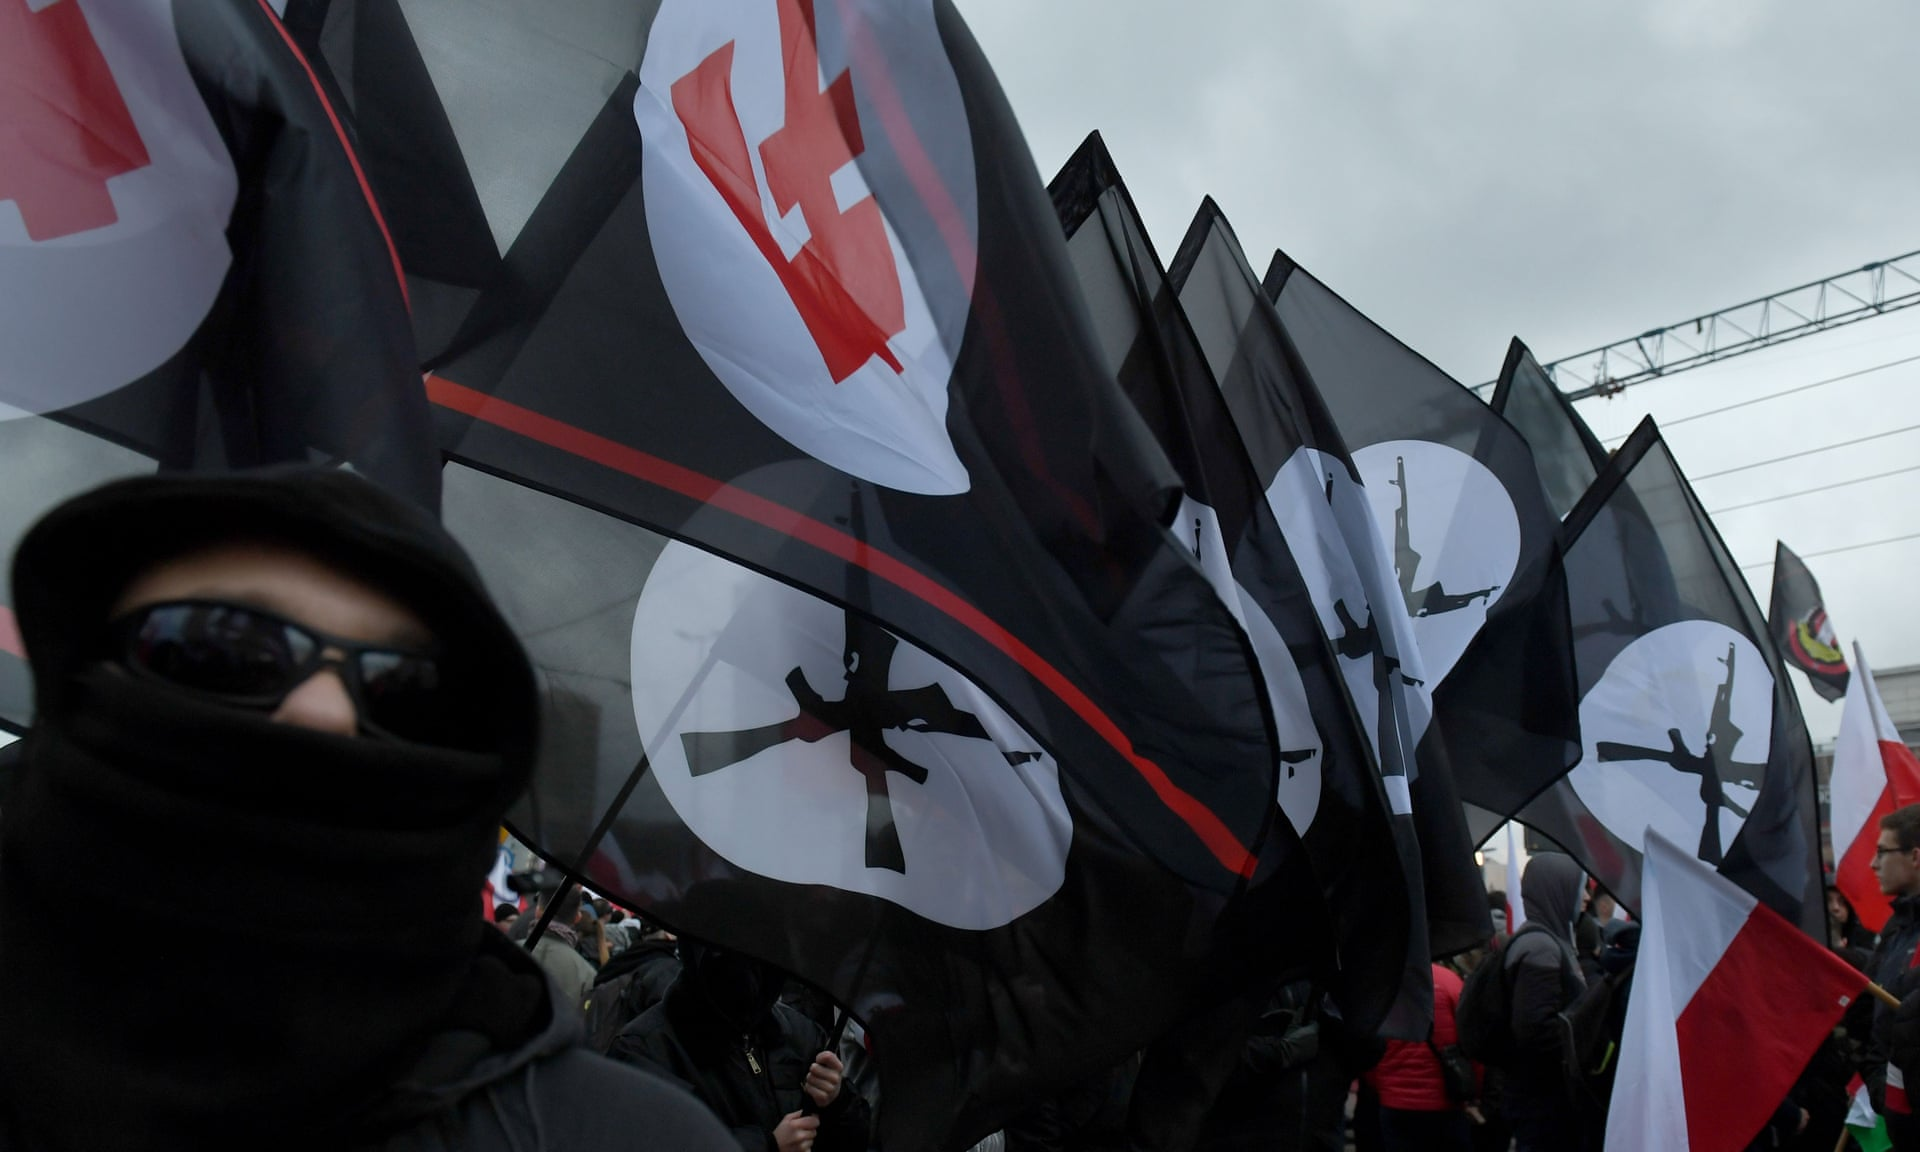 Far-right marchers brandish banners depicting a red falanga, a far-right symbol dating from the 1930s